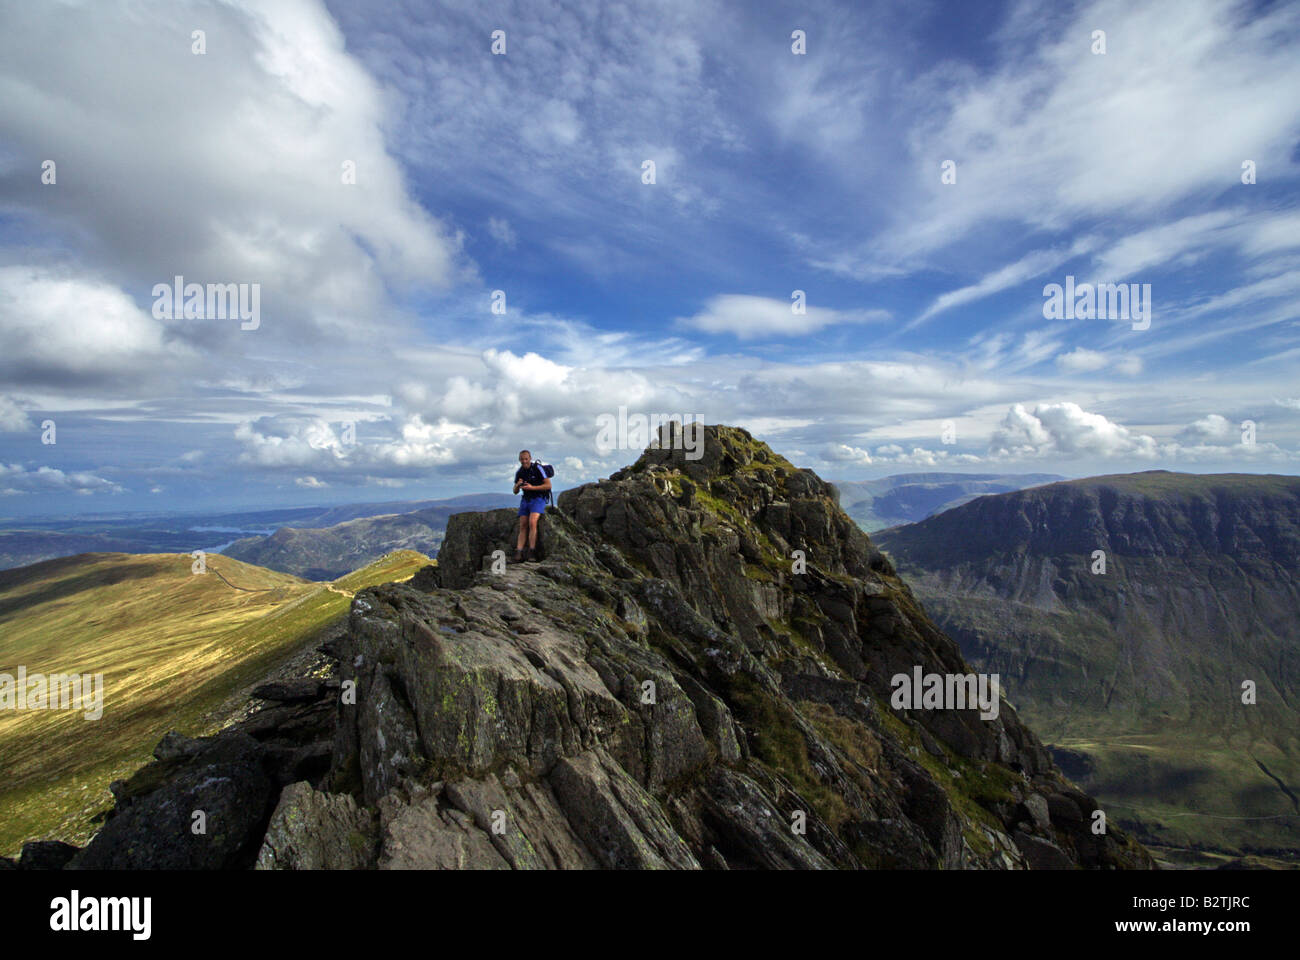 Standing on top of the world - Stock Image